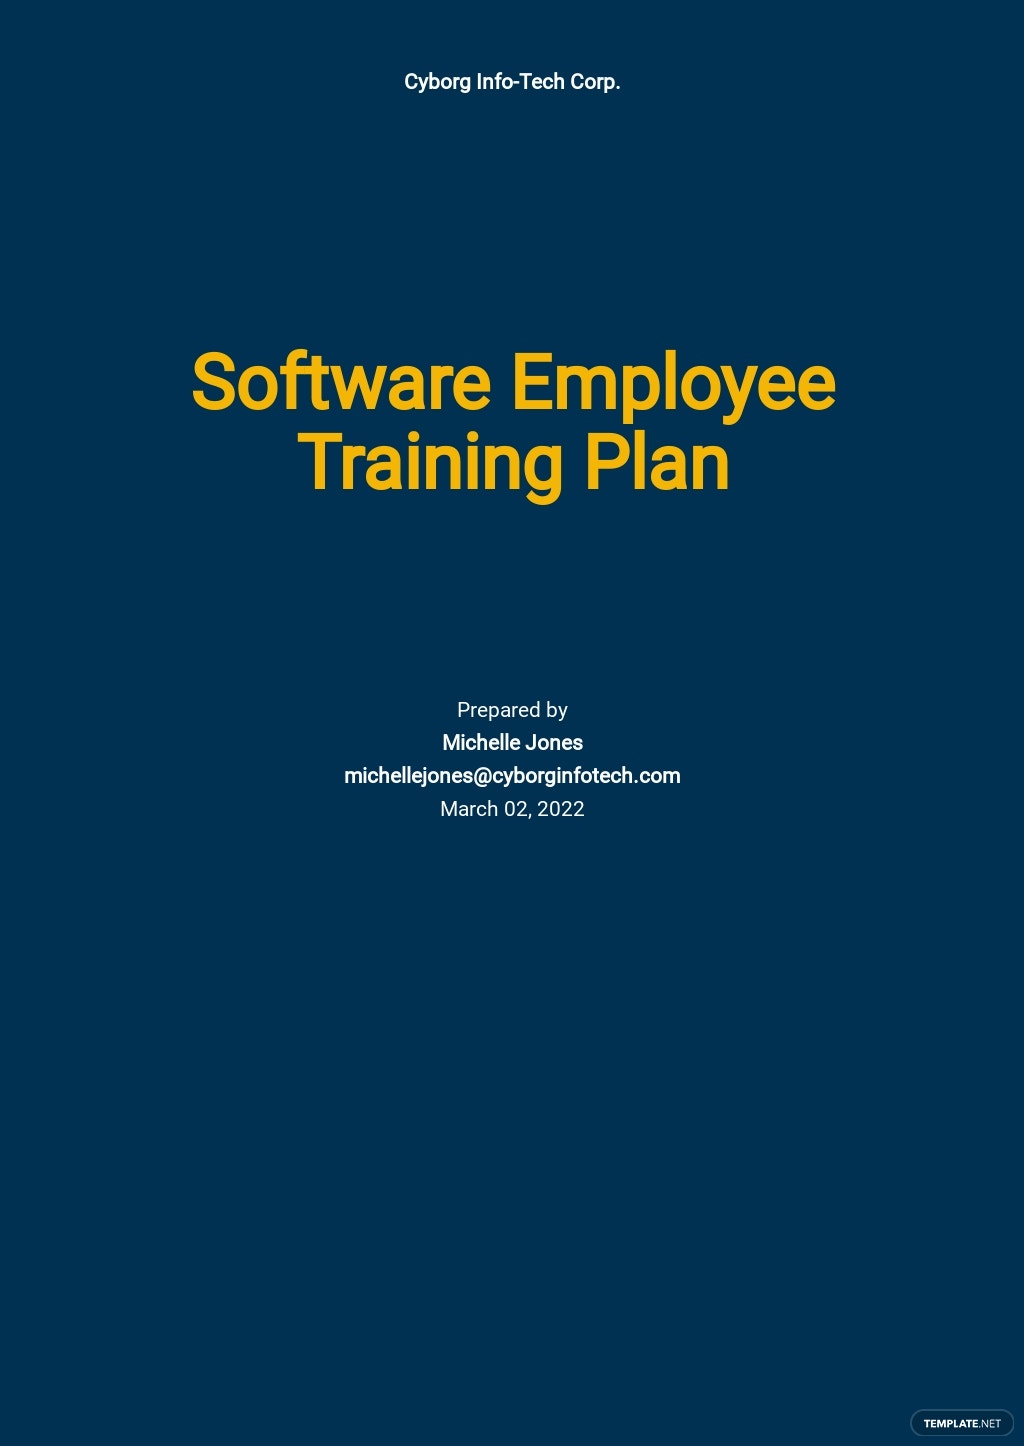 Software Employee Training Plan Template